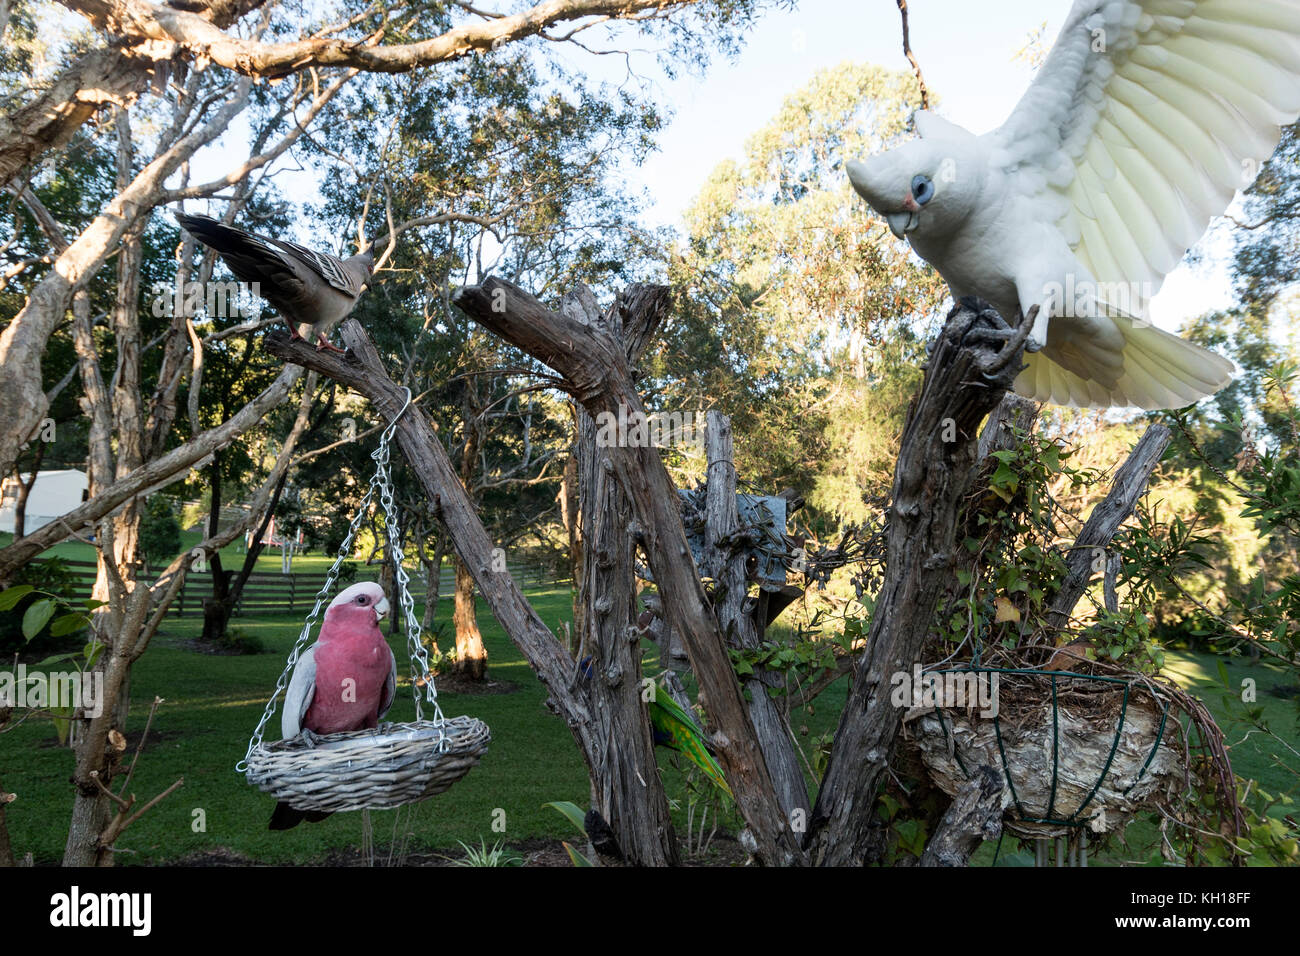 A Galah feeding whilst a Little Corella just landed on a tree stump in a residential garden on the Sunshine Coast, Stock Photo